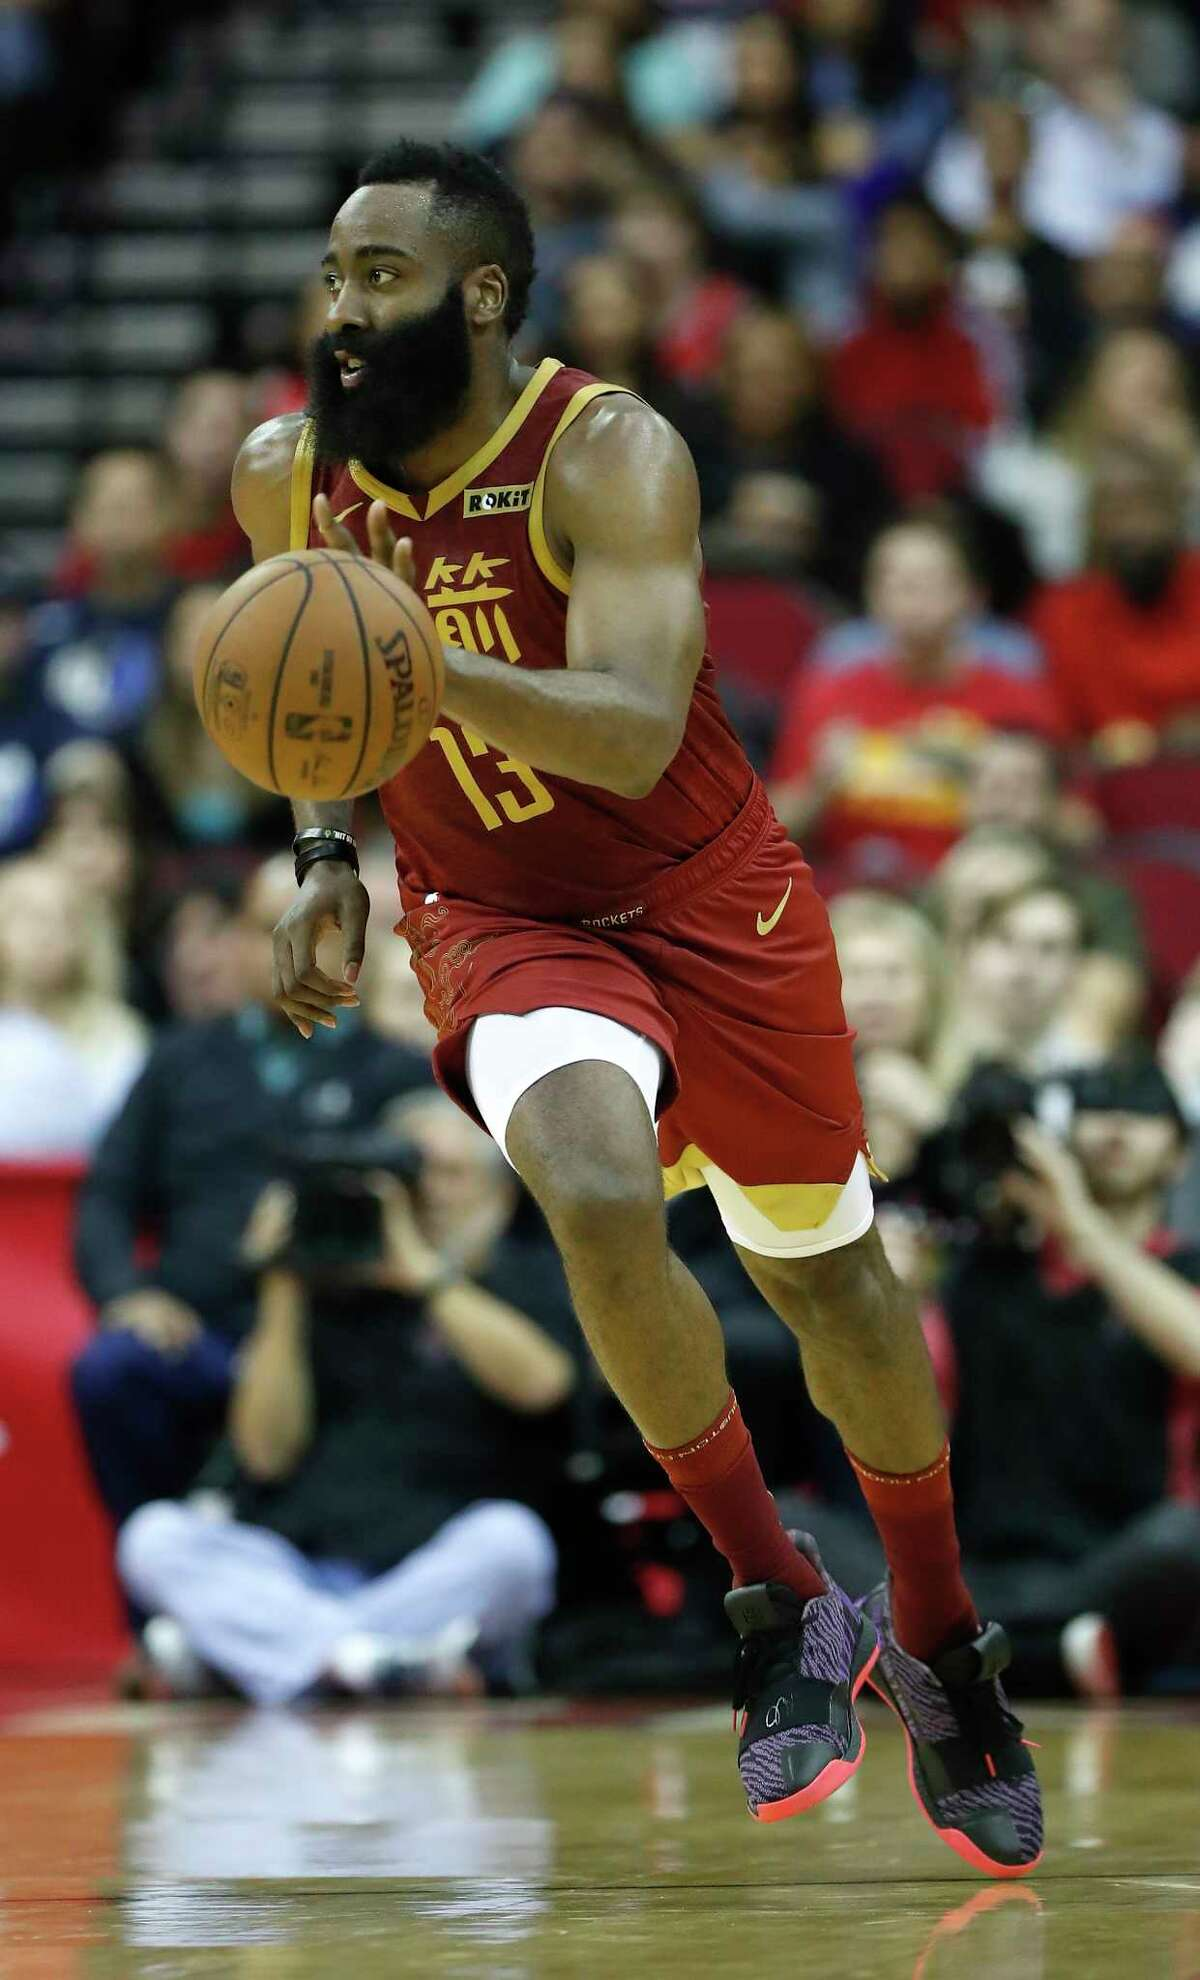 Houston Rockets guard James Harden (13) takes the ball up the court during the first half of an NBA game at the Toyota Center, Monday, Feb. 11, 2019, in Houston.